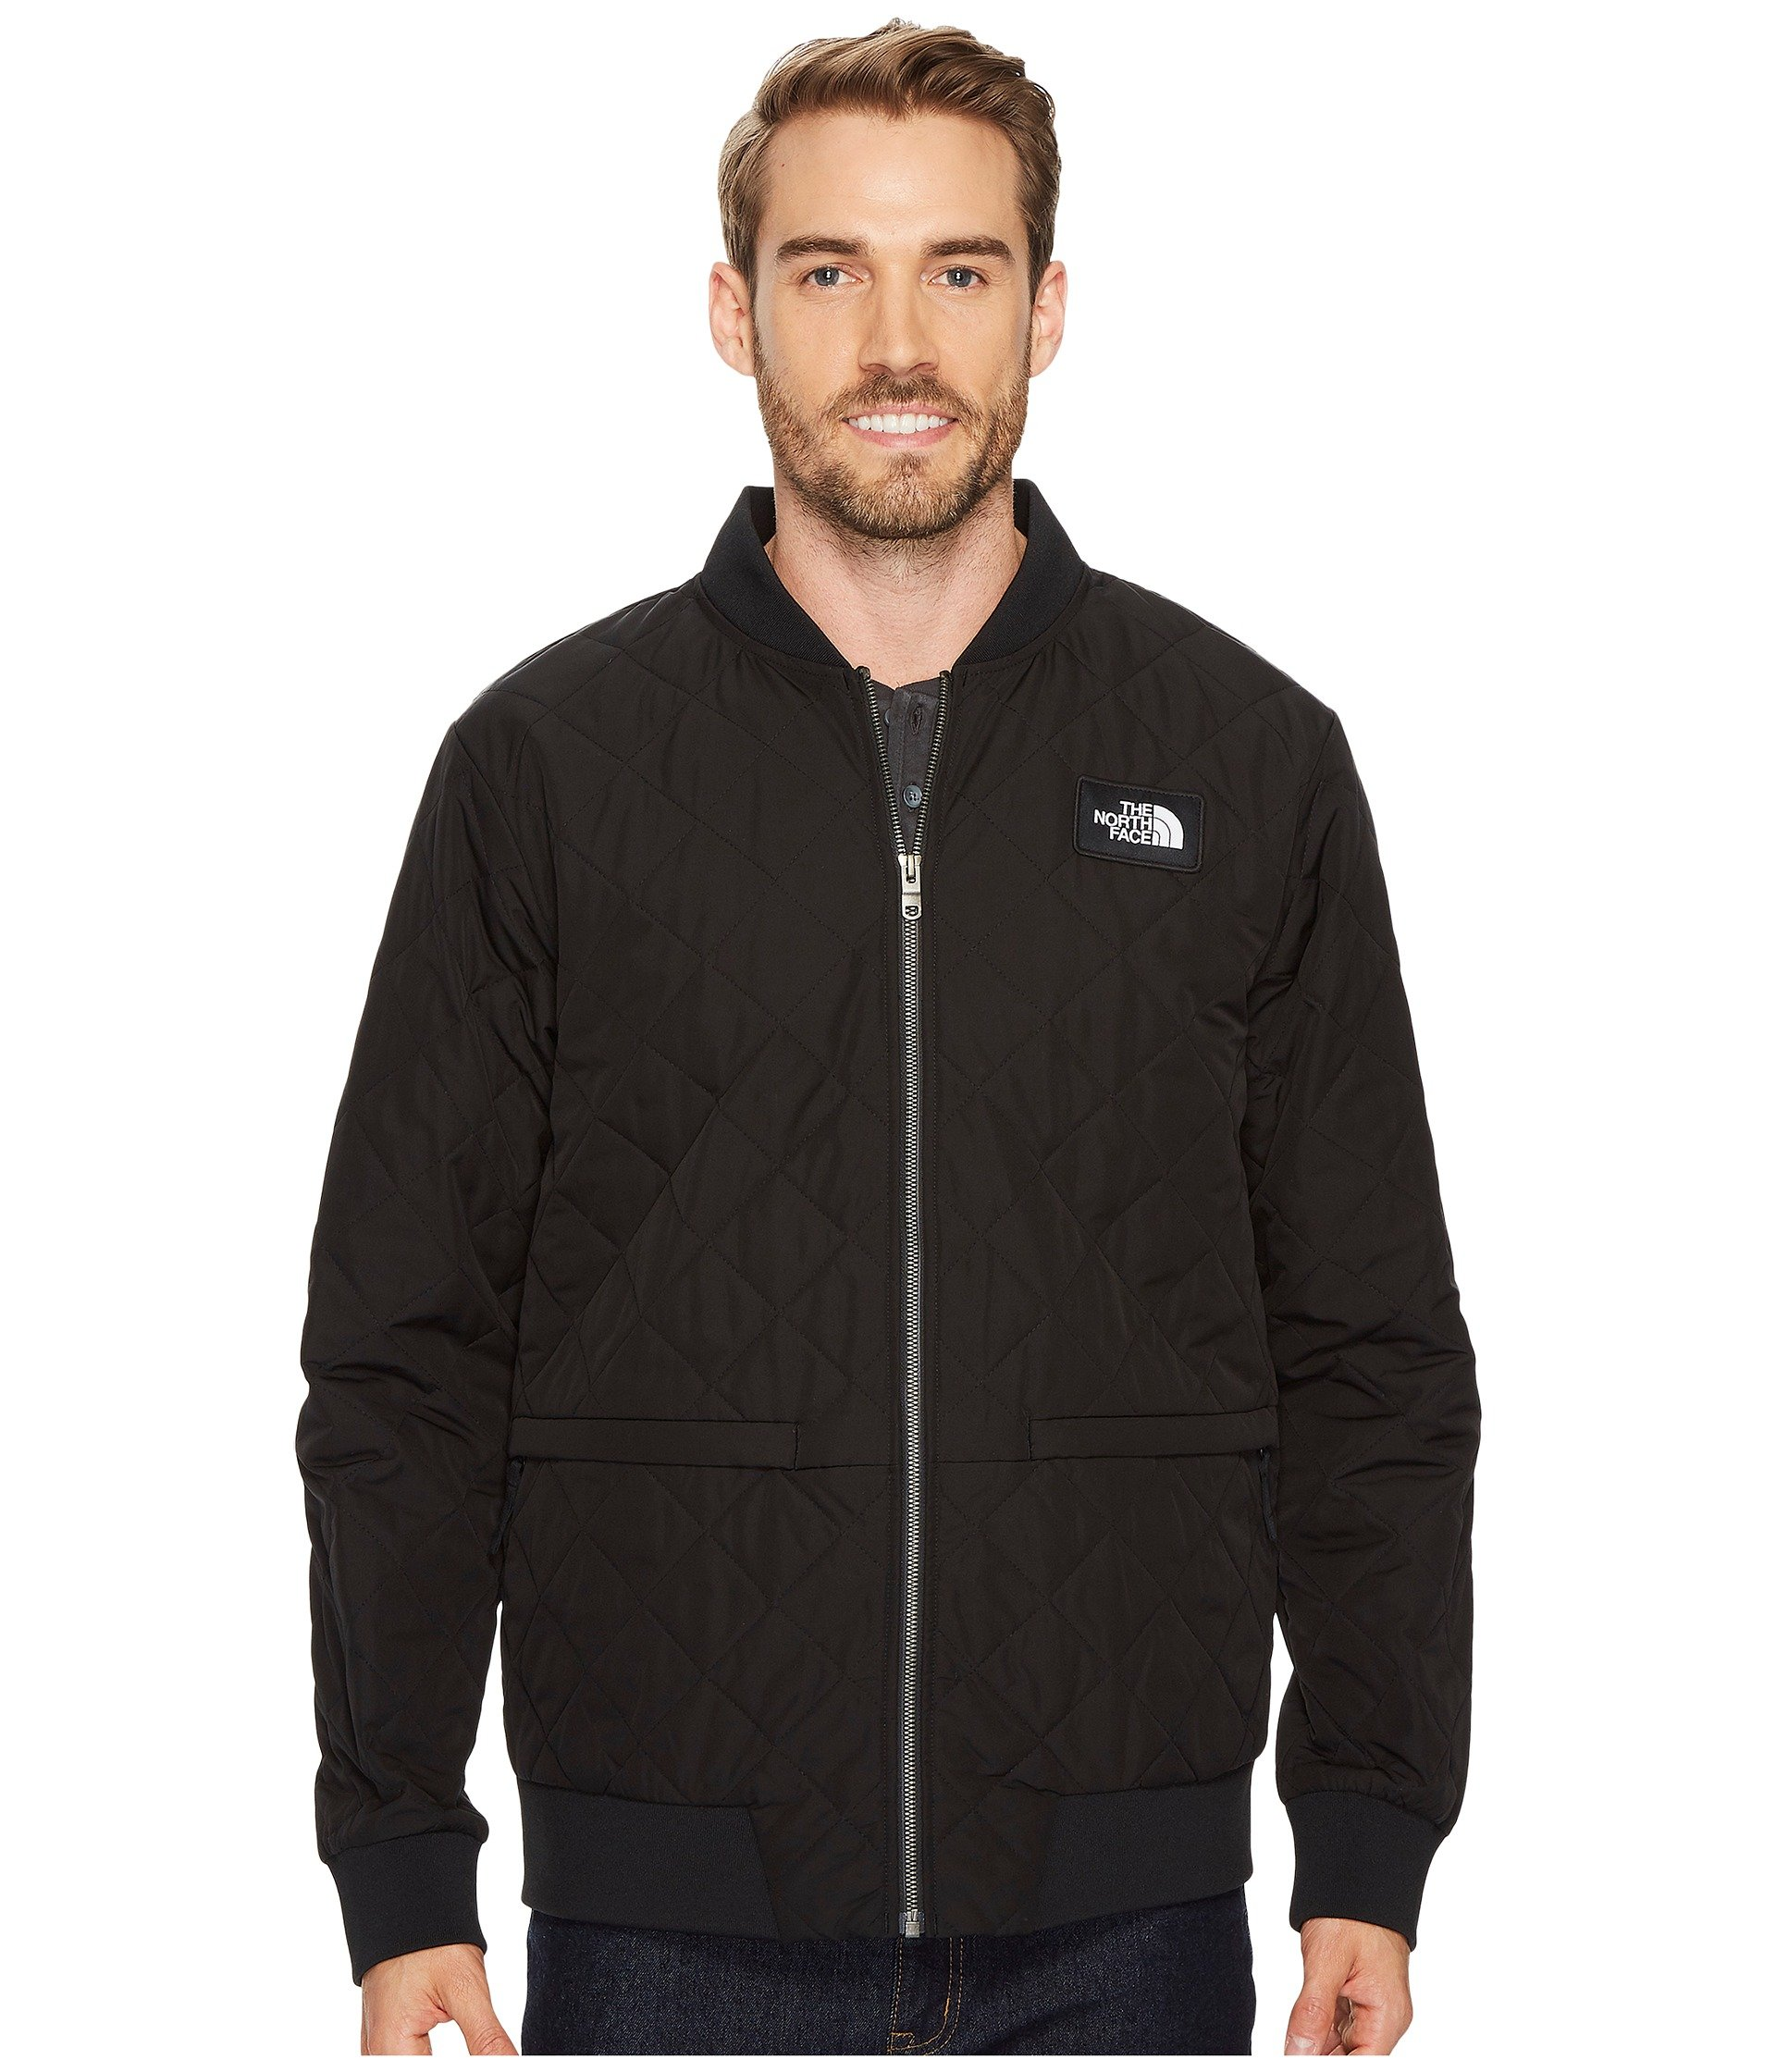 The North Face Distributor Jacket